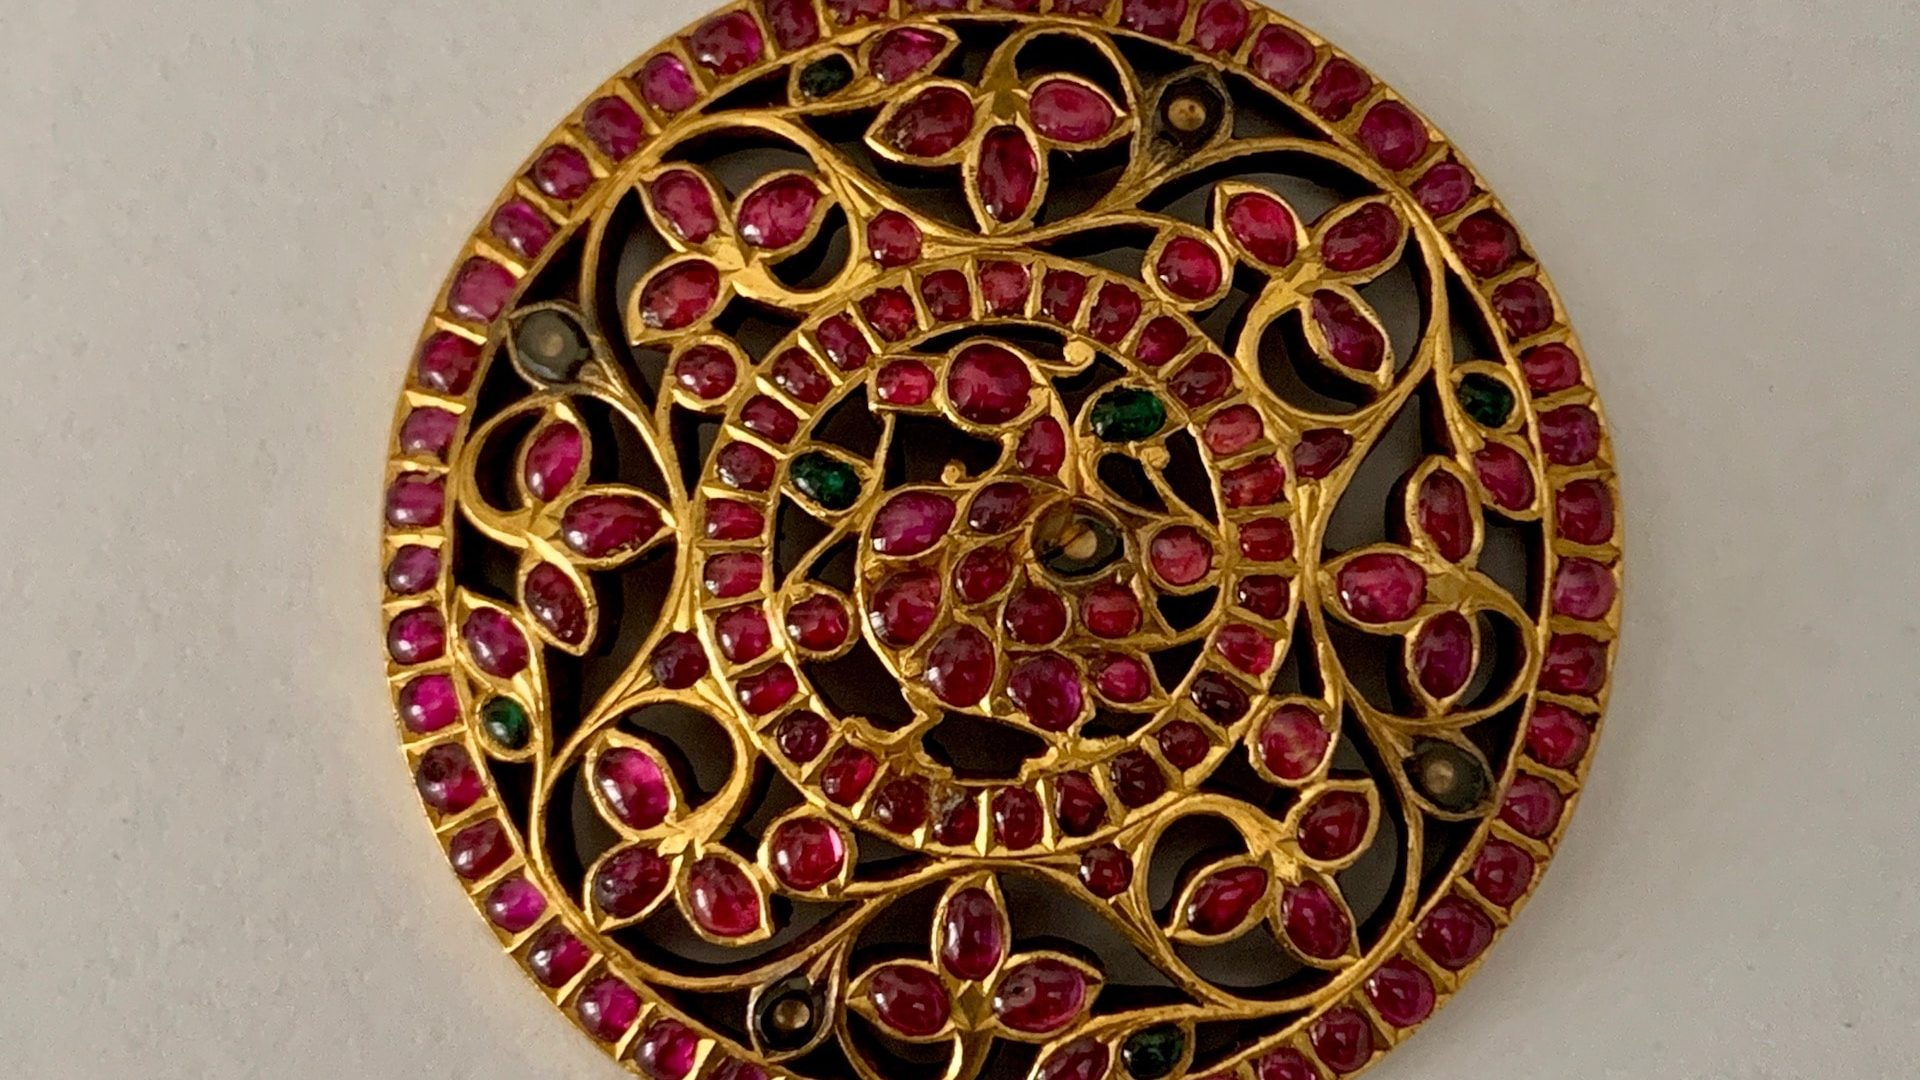 Antique Ruby Rakkodi (head ornament placed in the center of the back of the head. Just above the braid). Private collection.